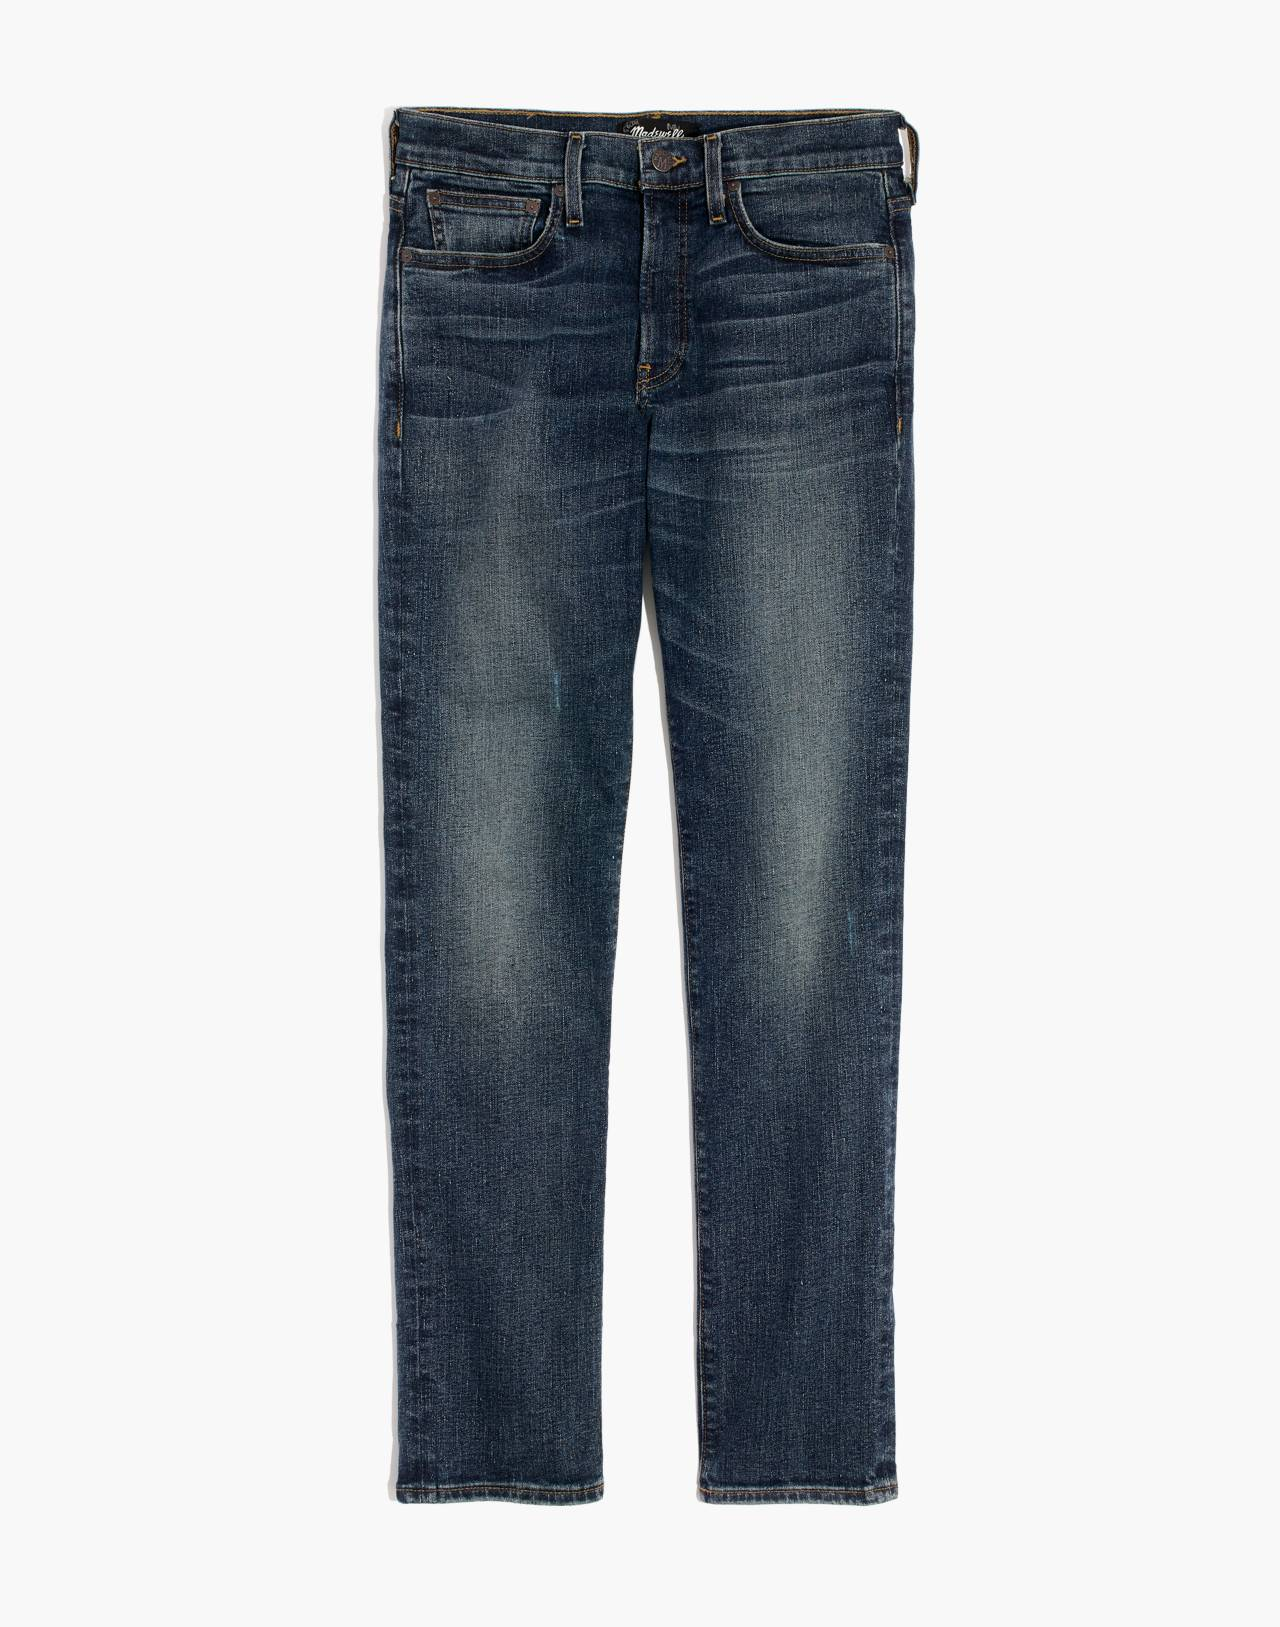 Slim Jeans in Osgoode Wash in osgoode wash image 4